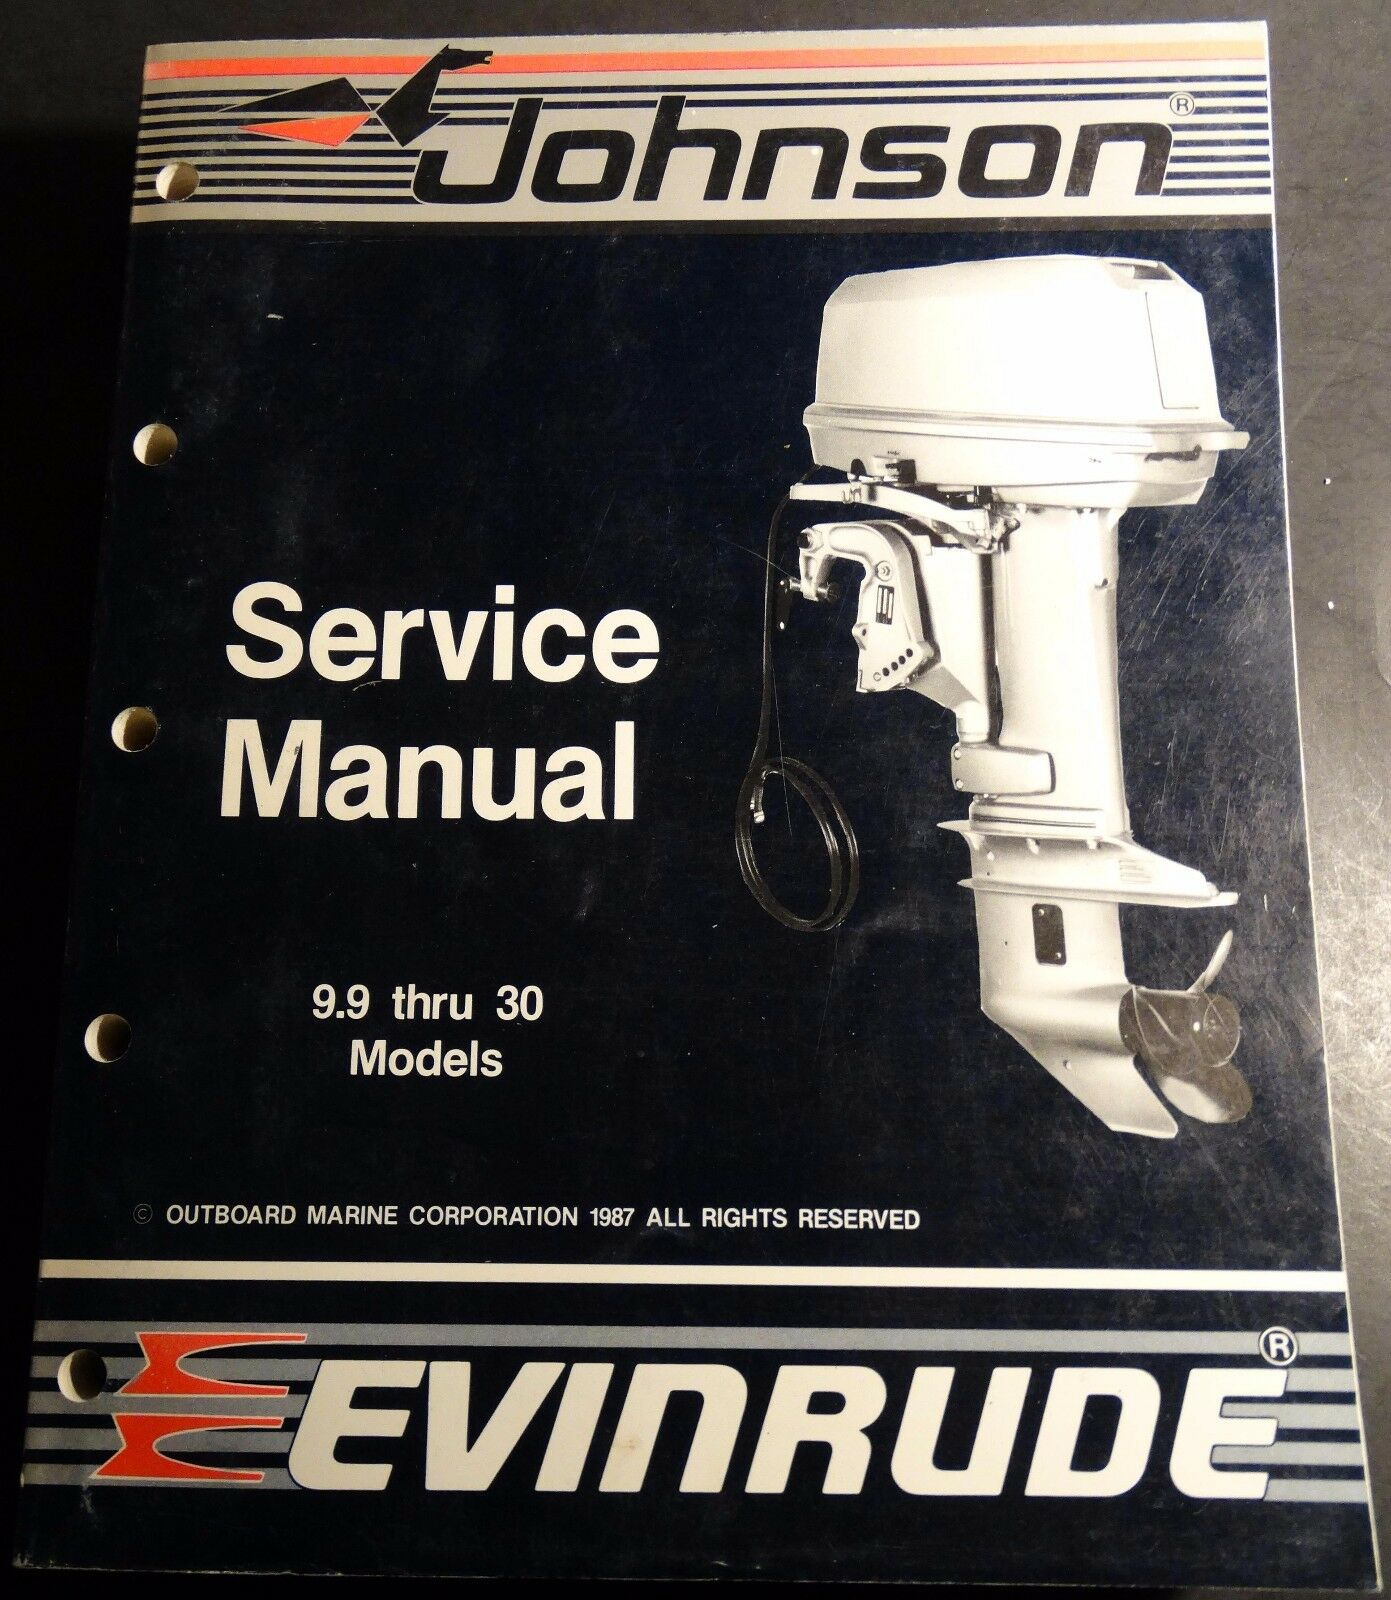 1988 Omc Cc Evinrude Johnson 9.9 Thru 30 Hp Service Manual P/n 507660 (